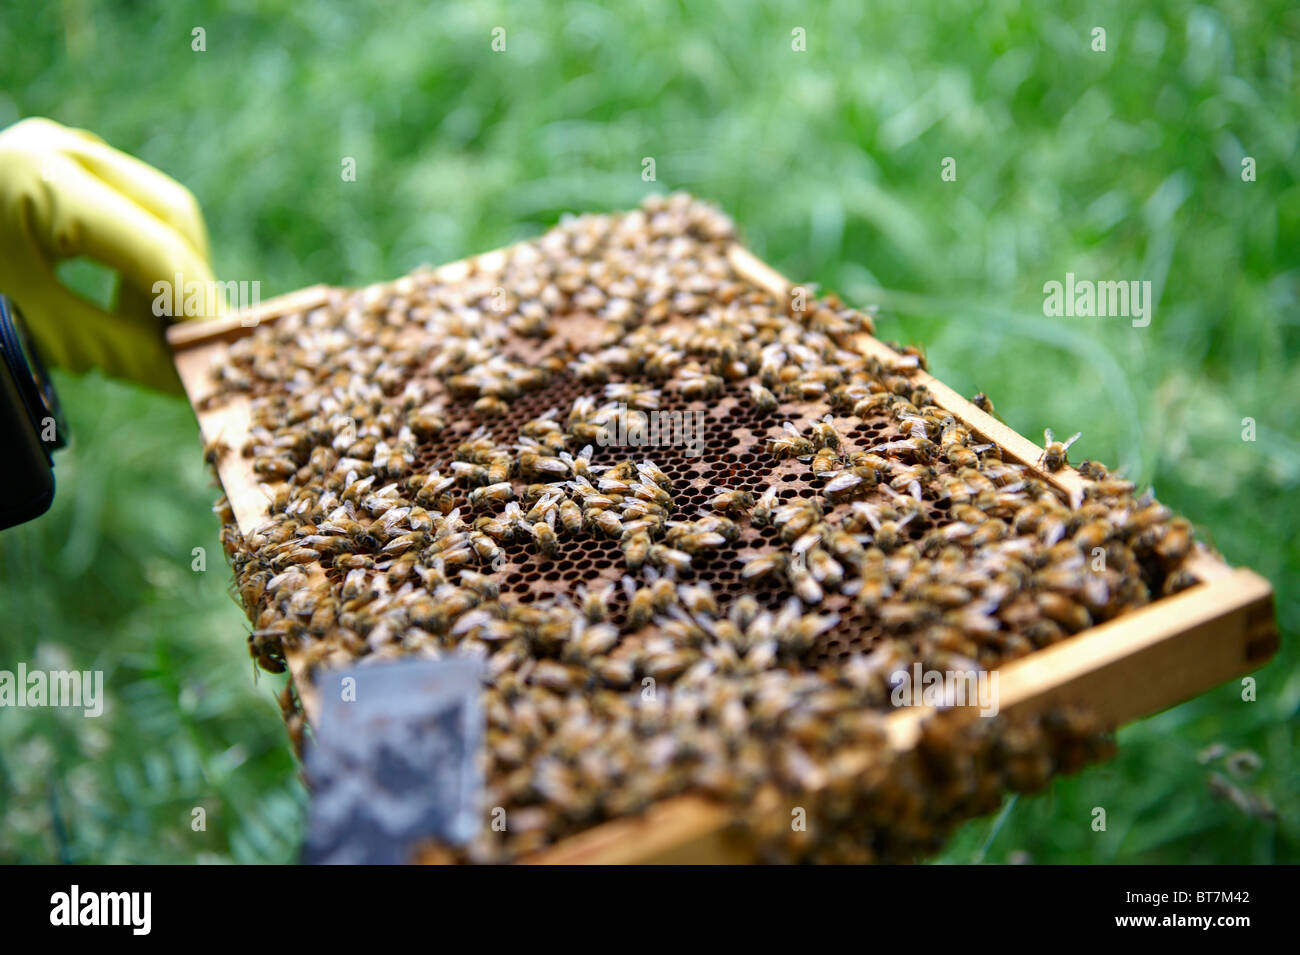 Frame of honey bees from a beehive being inspected by a beekeeper - Stock Image